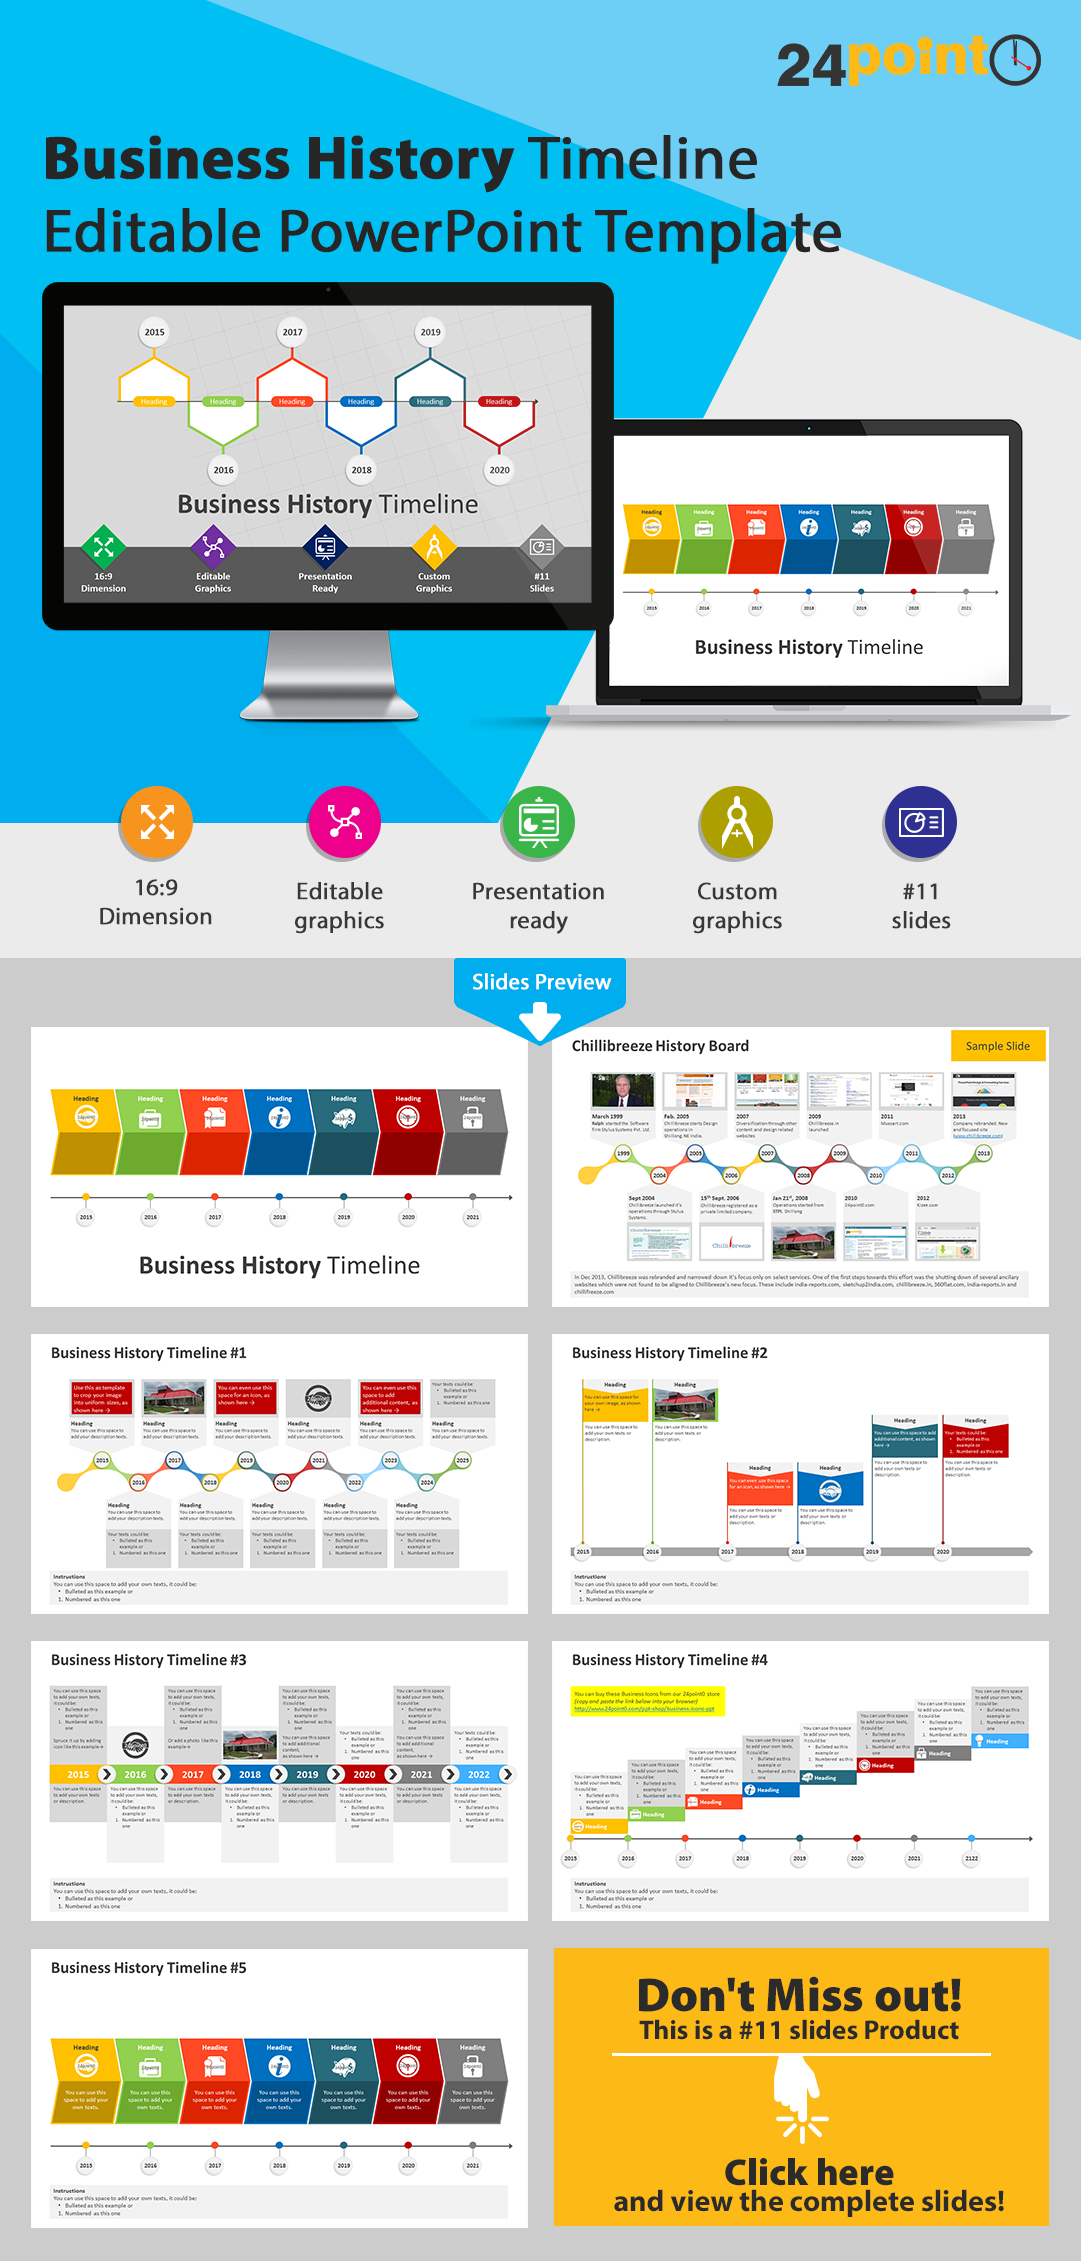 Business history timeline powerpoint template visualize your business history timeline powerpoint template visualize your organizations history by using our business history timeline toneelgroepblik Gallery